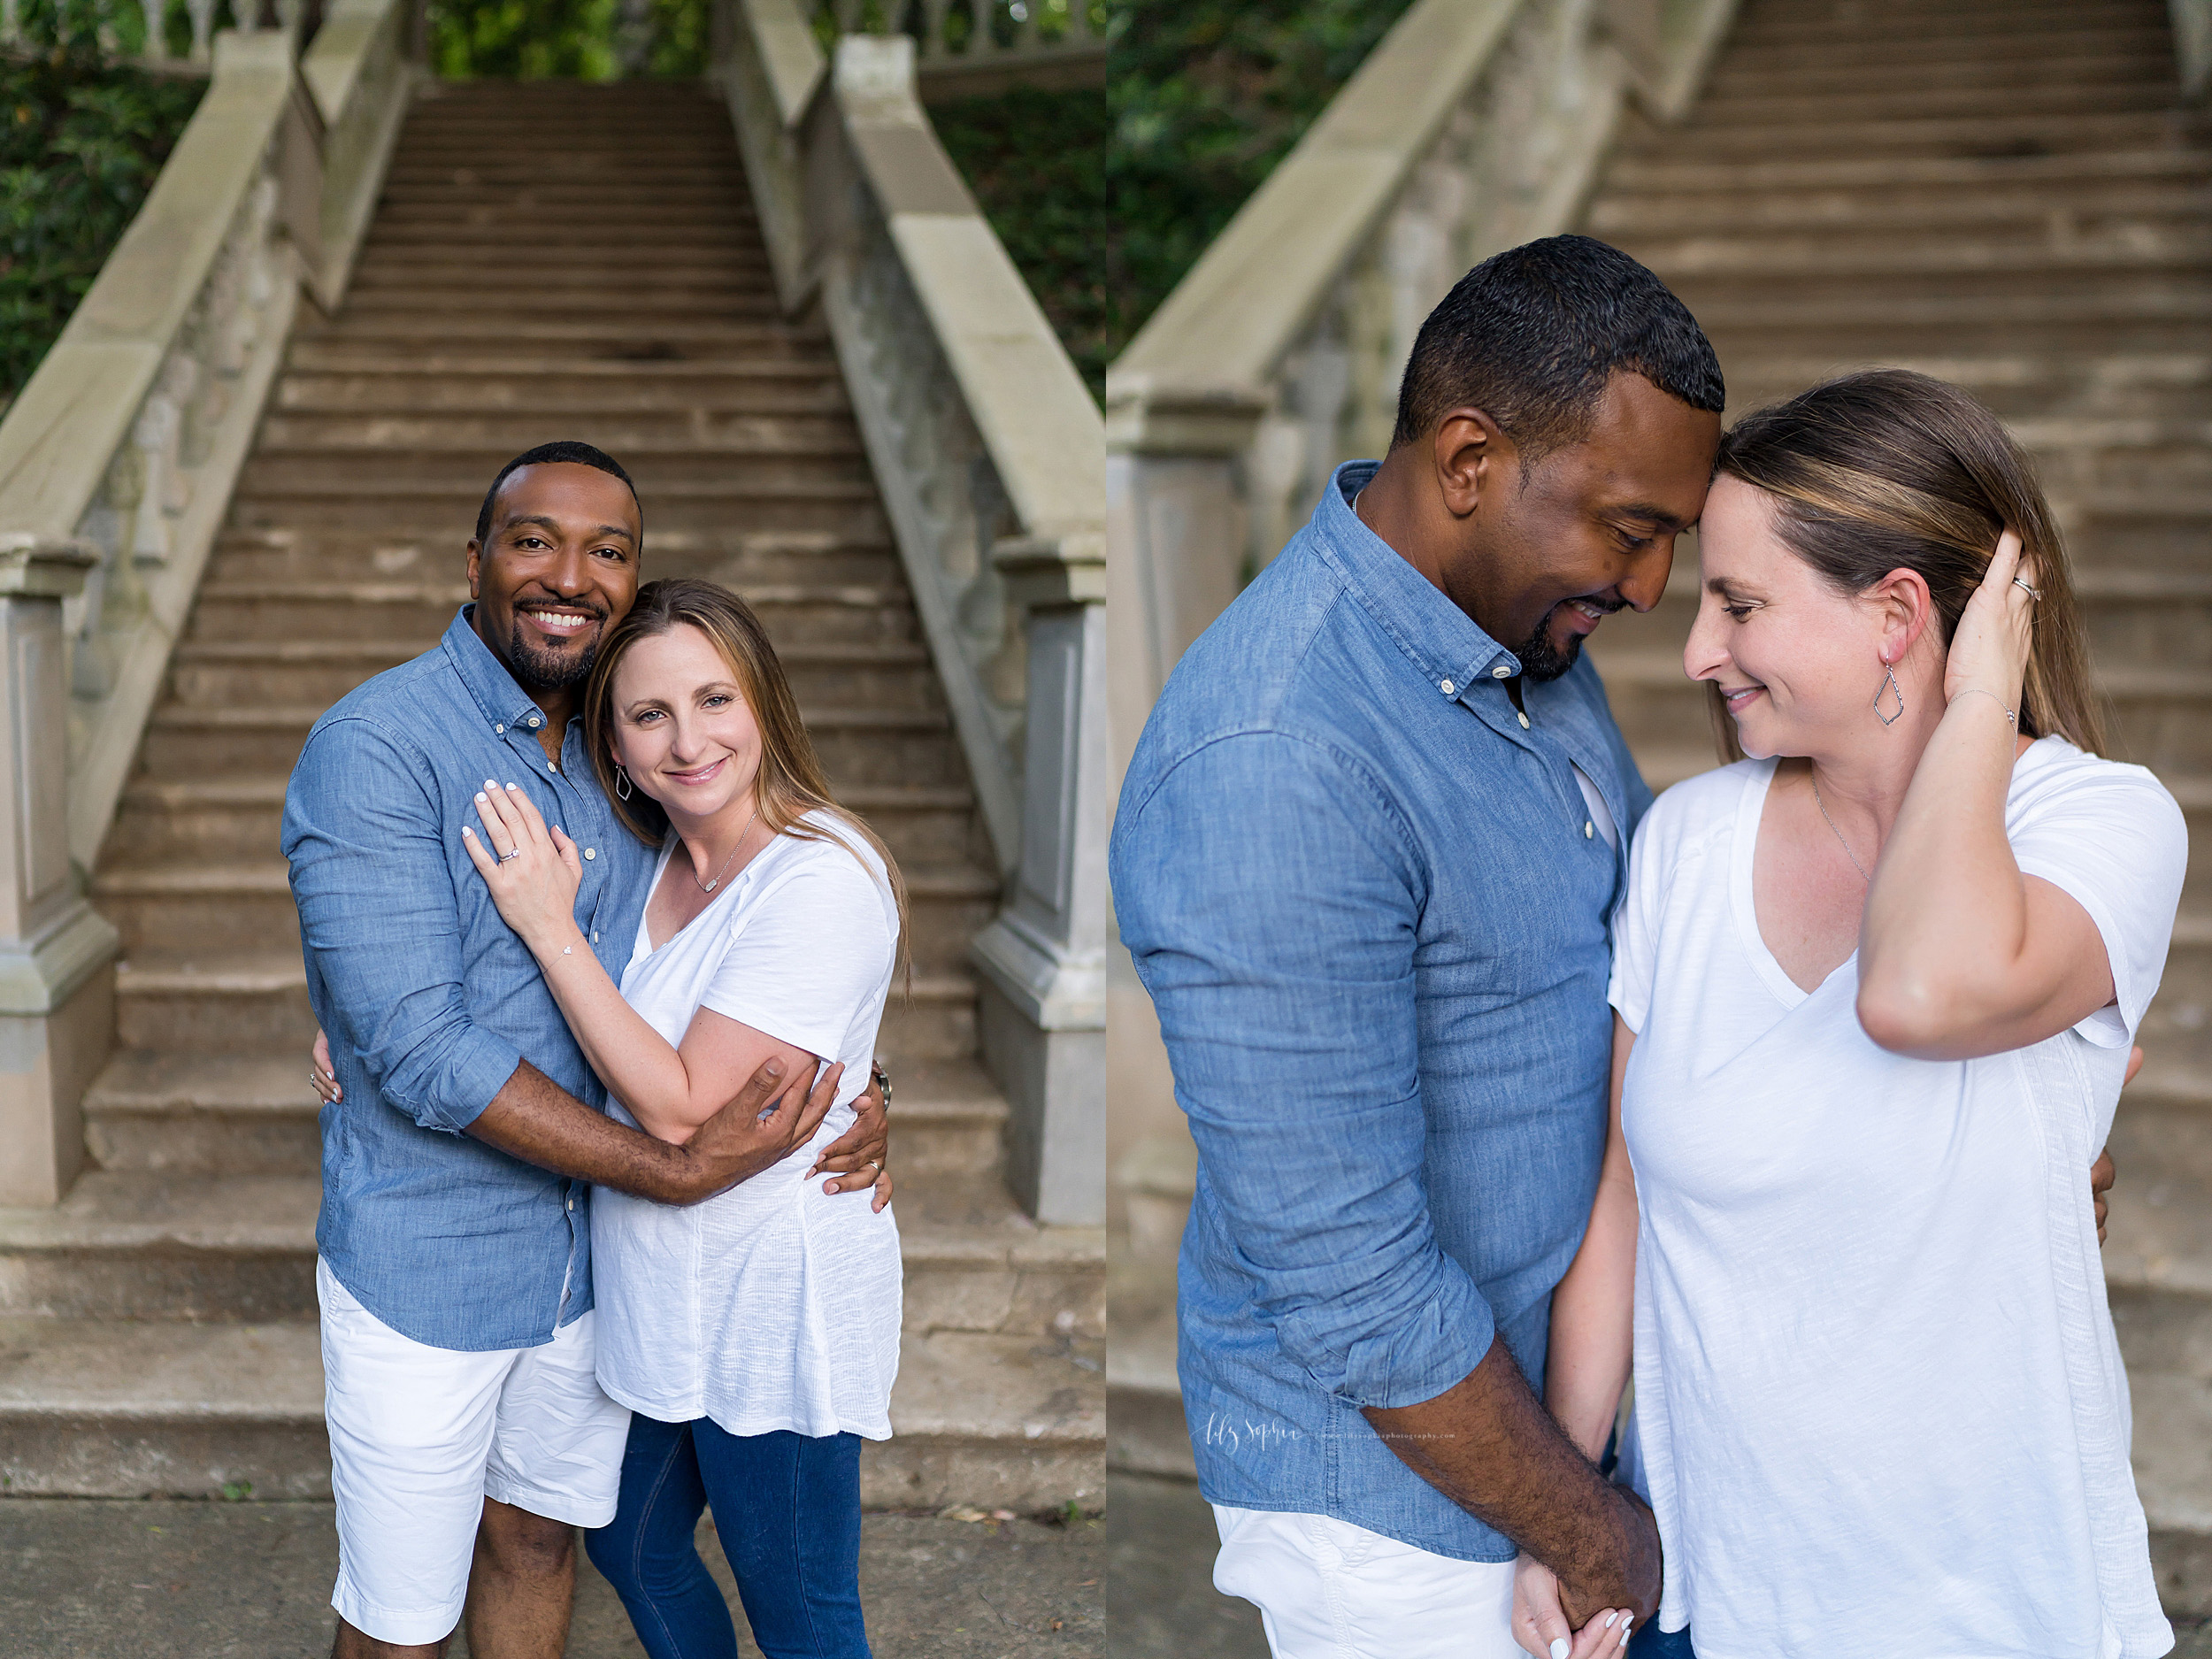 Split image photo of an African-American husband and his caucasian wife in an Atlanta garden. The couple stand at the foot of a stone staircase. The husband is standing to the left of his wife and has his left arm around his wife's waist and his right arm on his wife's right upper arm. His wife has her right hand on her husband's chest and her head resting against her husband's bearded face. In the other photo the husband is facing his wife to showcase his profile. His wife is standing next to him facing forward. The husband and wife are holding their right hands together and the wife has her left hand in her hair.  The couple is looking at one another as they touch one another's foreheads.